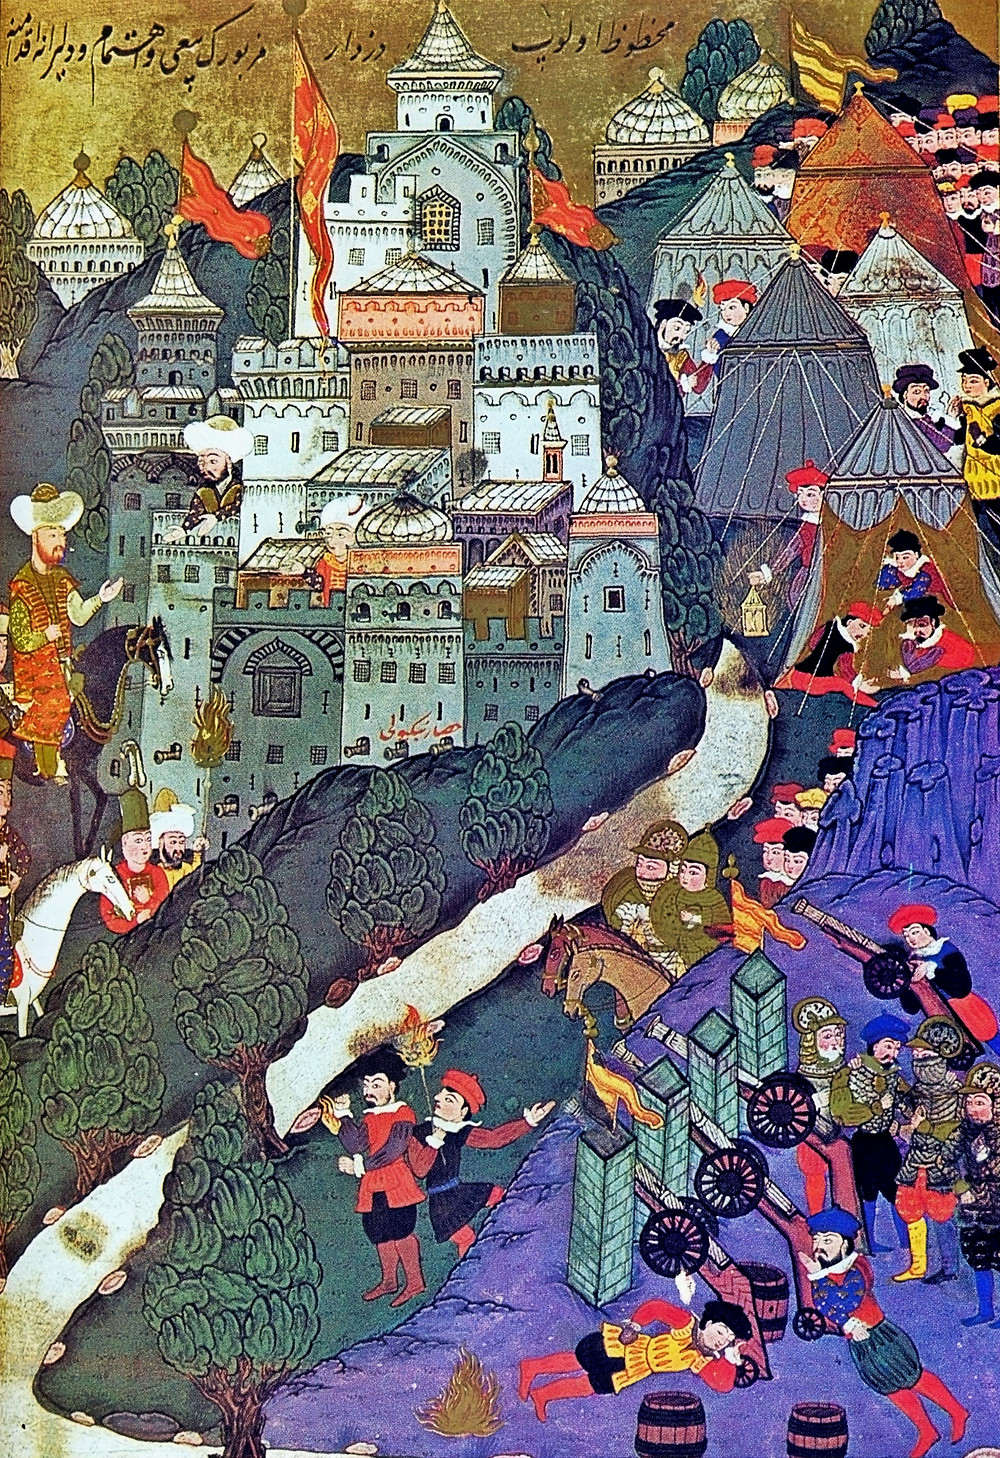 Fig. 4. The Battle of Nicopolis in 1396 (painting from 1523). By their victory at Nicopolis, the Turks tightened their control over the Balkans and became a greater threat to central Europe.